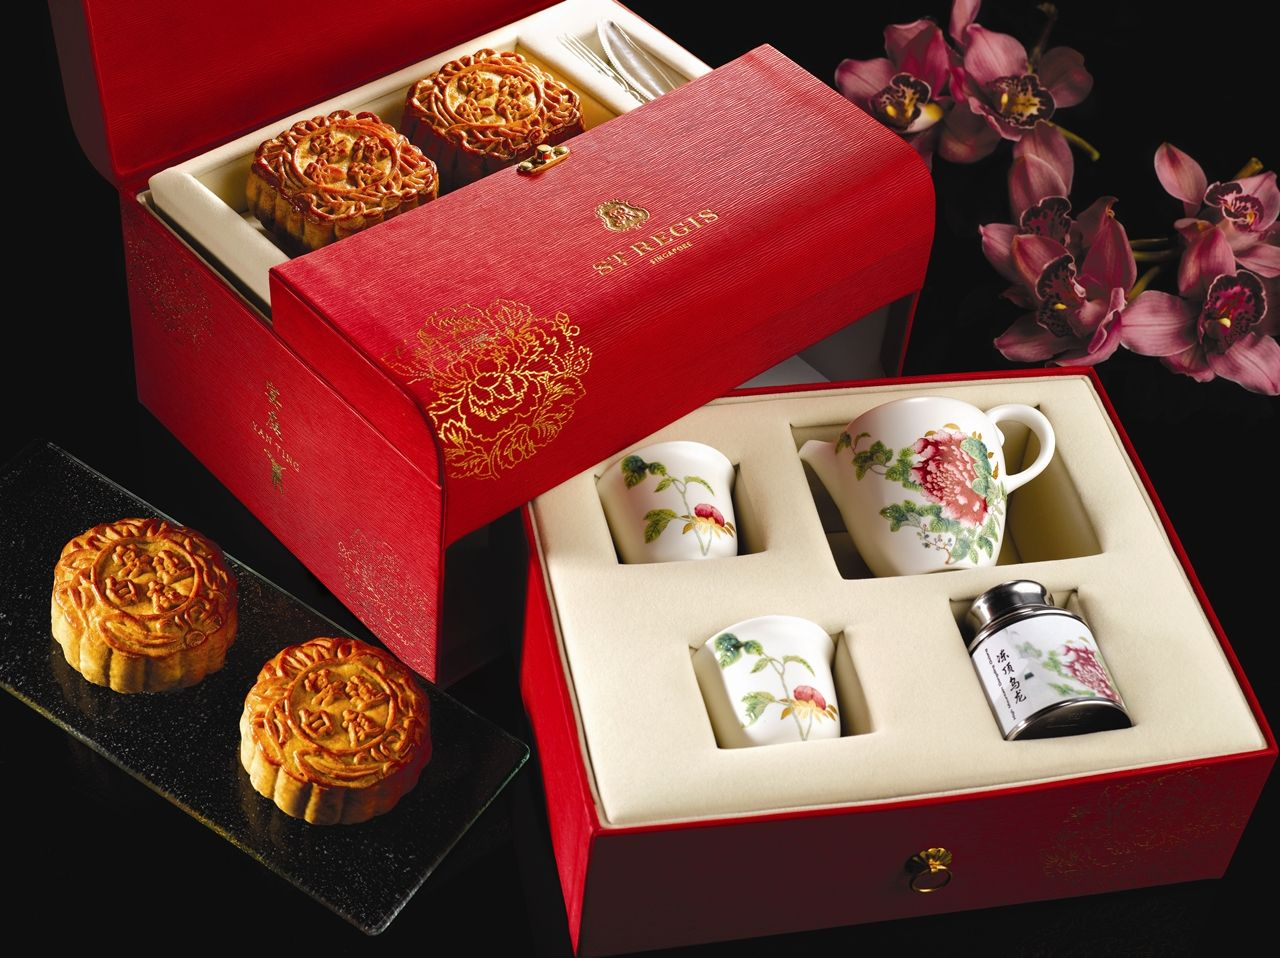 Moon Cake Packaging Design Vector : mid autumn gift set singapore - Google Search Packaging ...